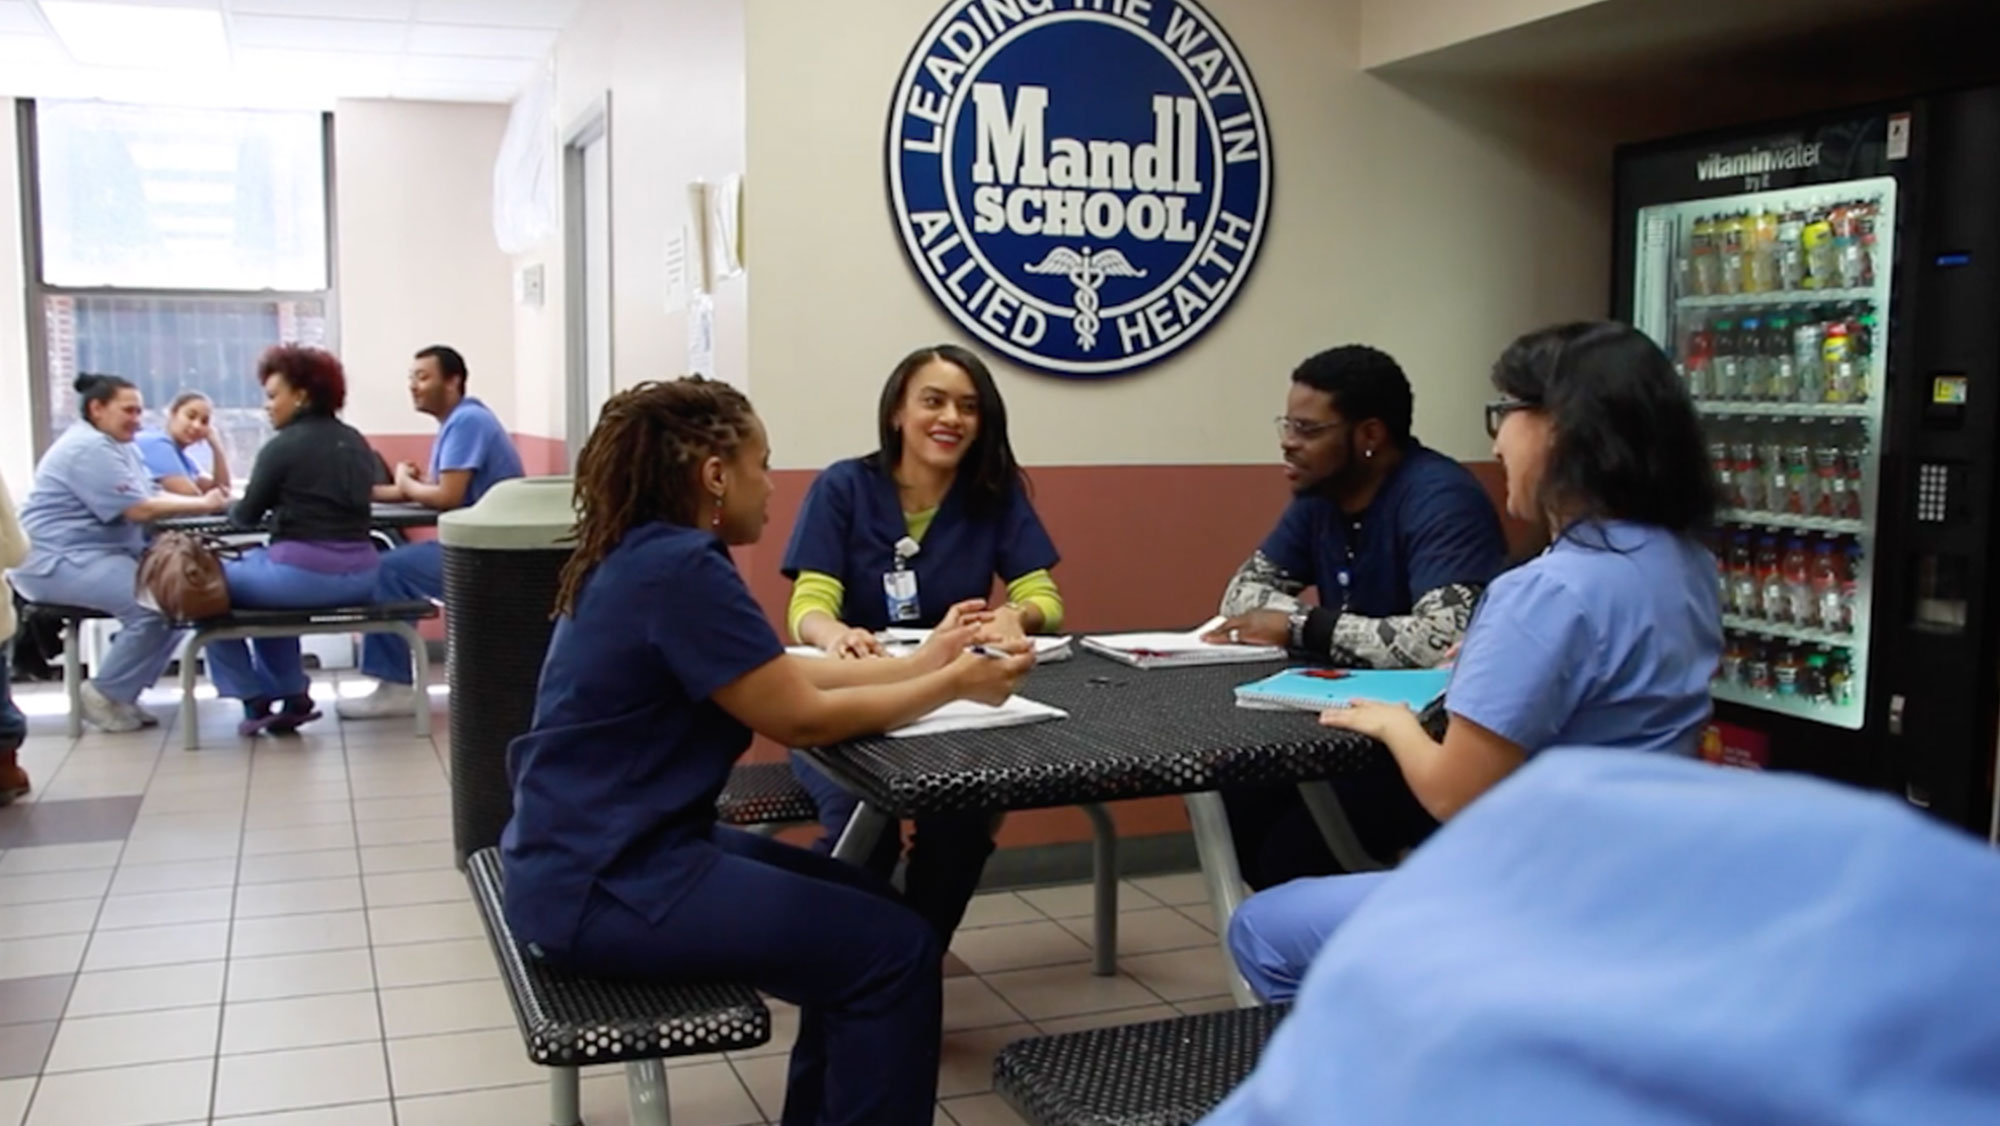 mandl school the college of allied health